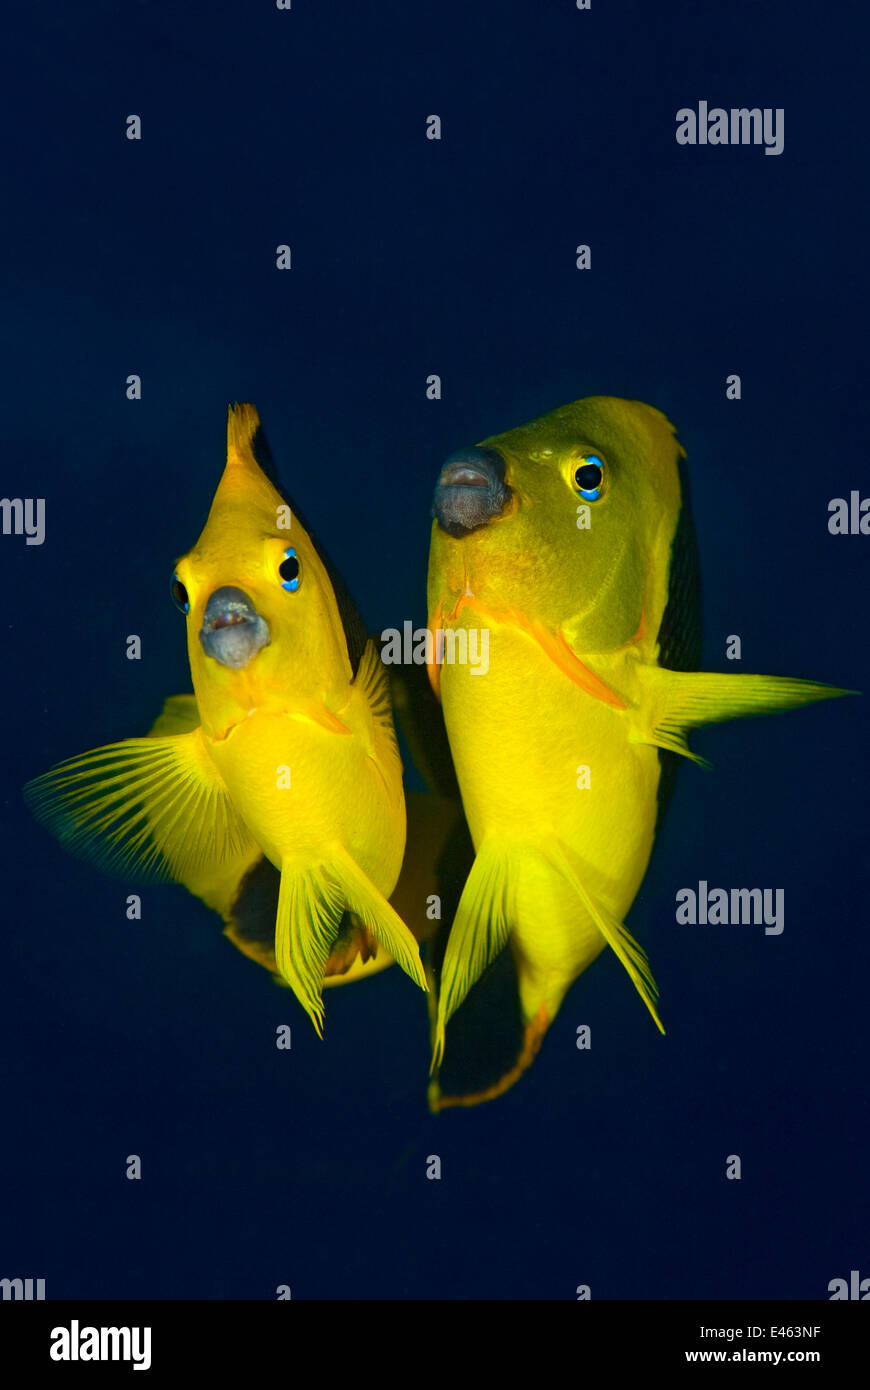 Rock beauty angelfish (Holacanthus tricolor) pair at dusk performing their courtship dance with the larger male - Stock Image